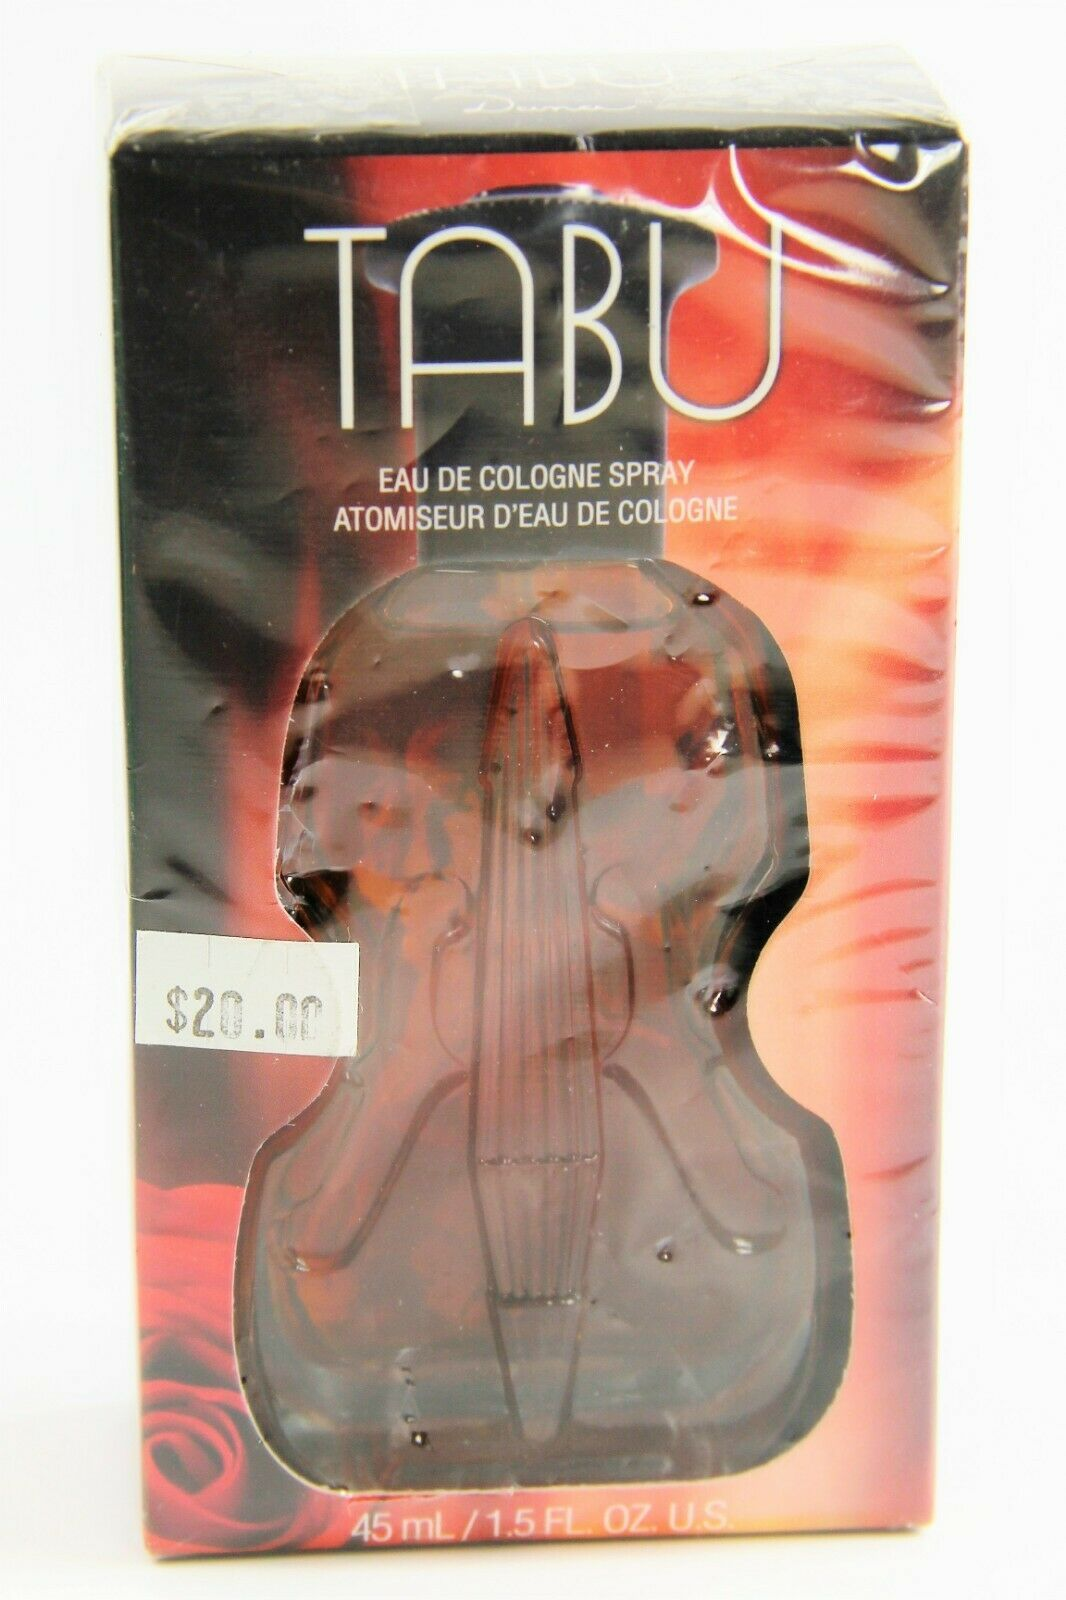 SEALED VINTAGE TABU EAU DE COLOGNE SPRAY 1.5 FL OZ VIOLIN SHAPED BOTTLE DANA